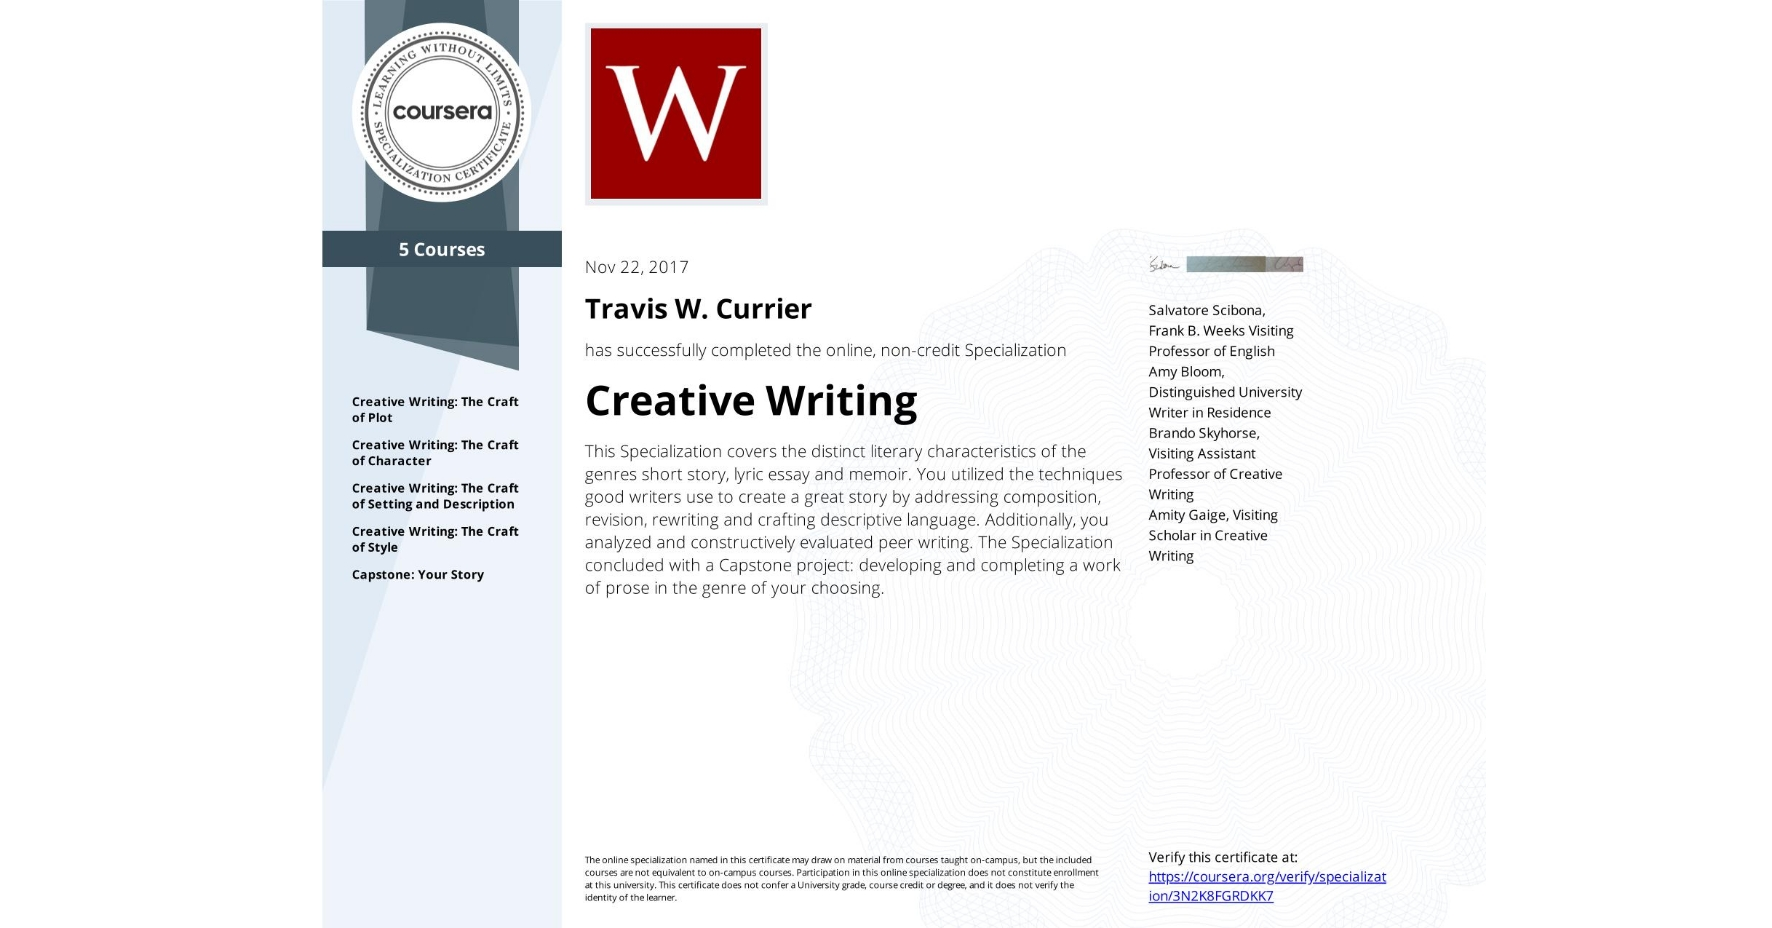 View certificate for Travis W. Currier, Creative Writing, offered through Coursera. This Specialization covers the distinct literary characteristics of the genres short story, lyric essay and memoir. You utilized the techniques good writers use to create a great story by addressing composition, revision, rewriting and crafting descriptive language. Additionally, you analyzed and constructively evaluated peer writing. The Specialization concluded with a Capstone project: developing and completing a work of prose in the genre of your choosing.